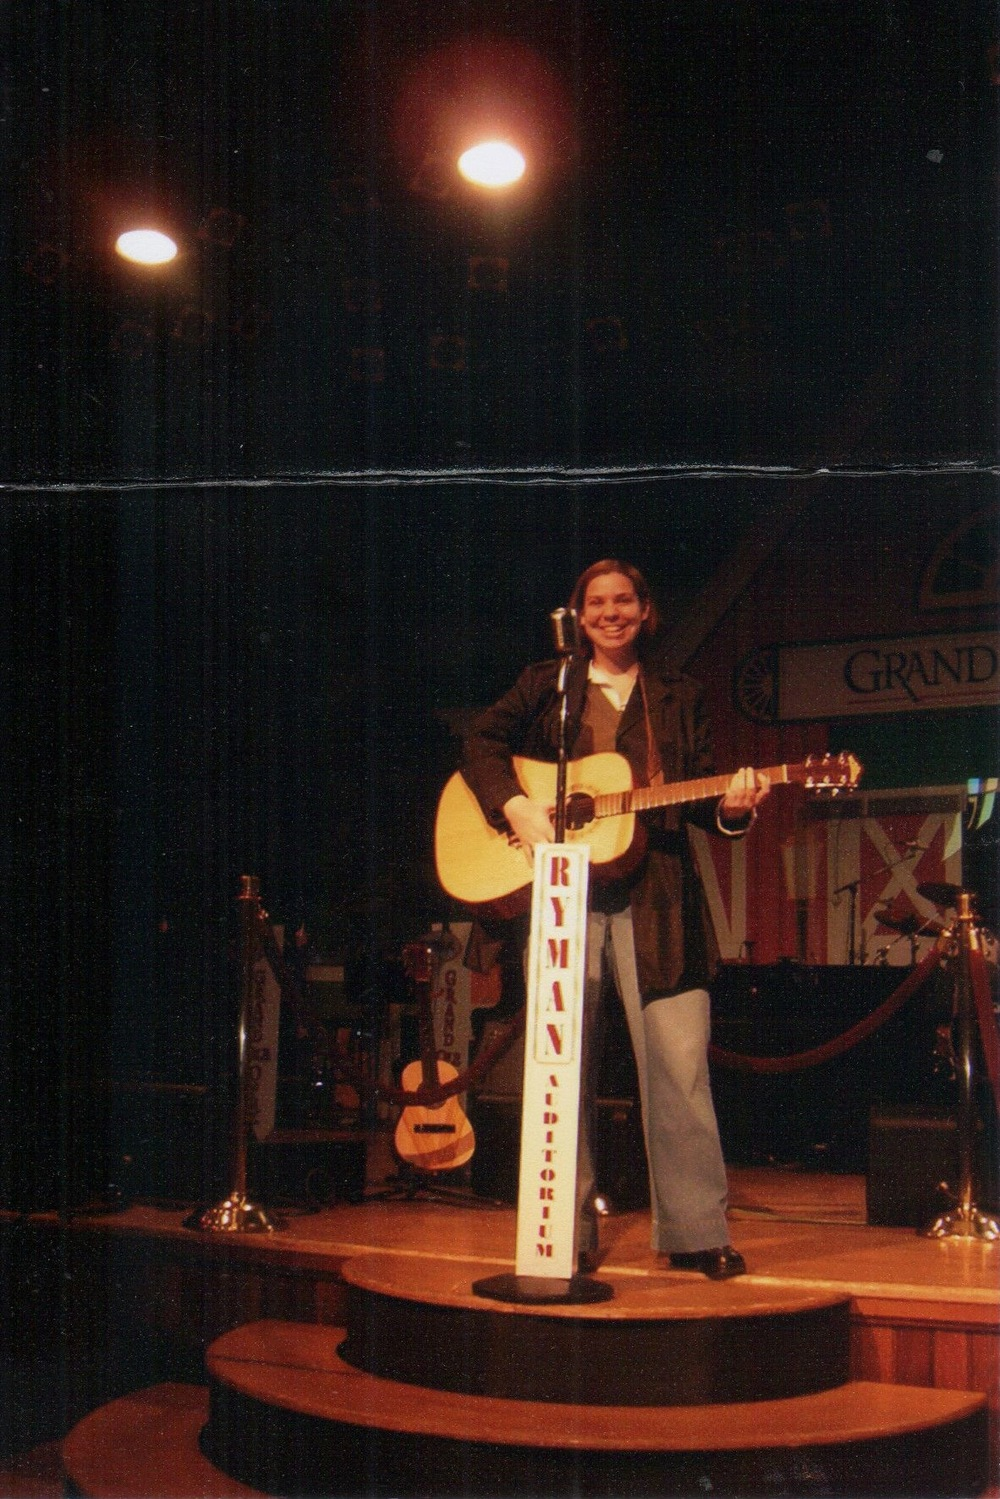 Erica at the RyMan Full.jpg